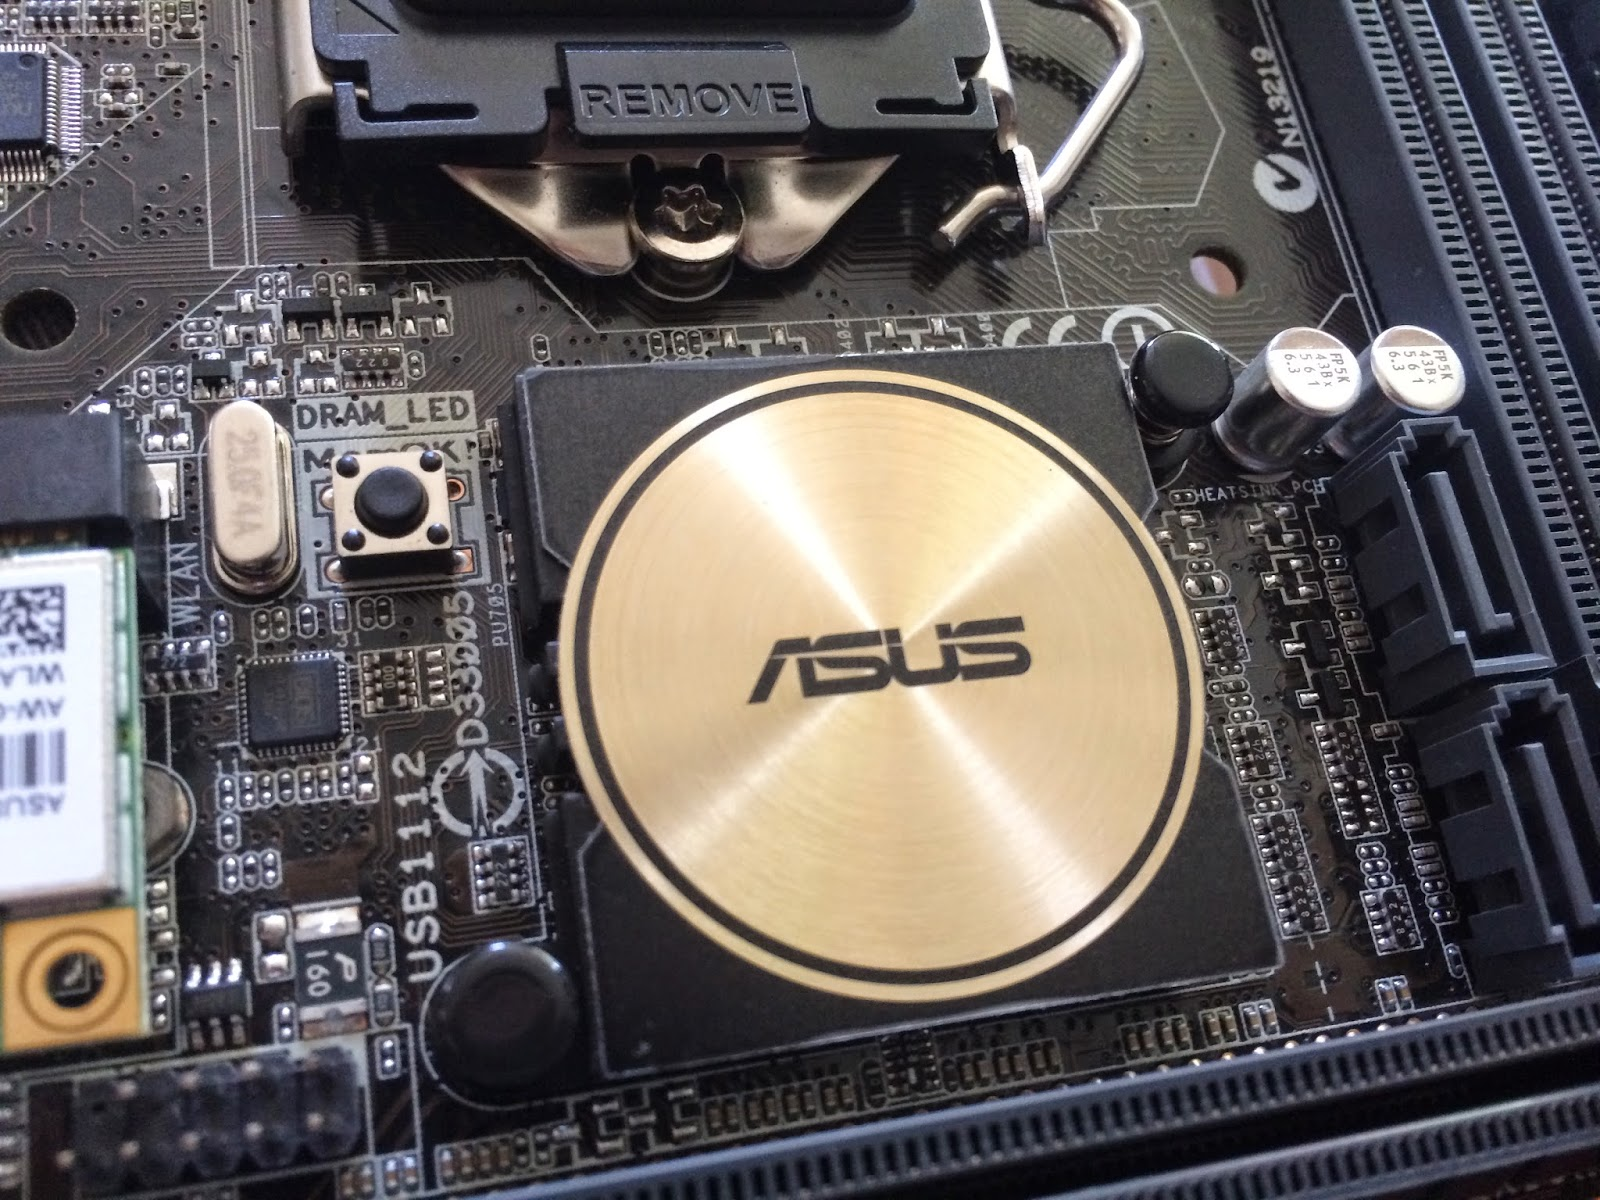 Unboxing & Review - ASUS Z97I-PLUS 150